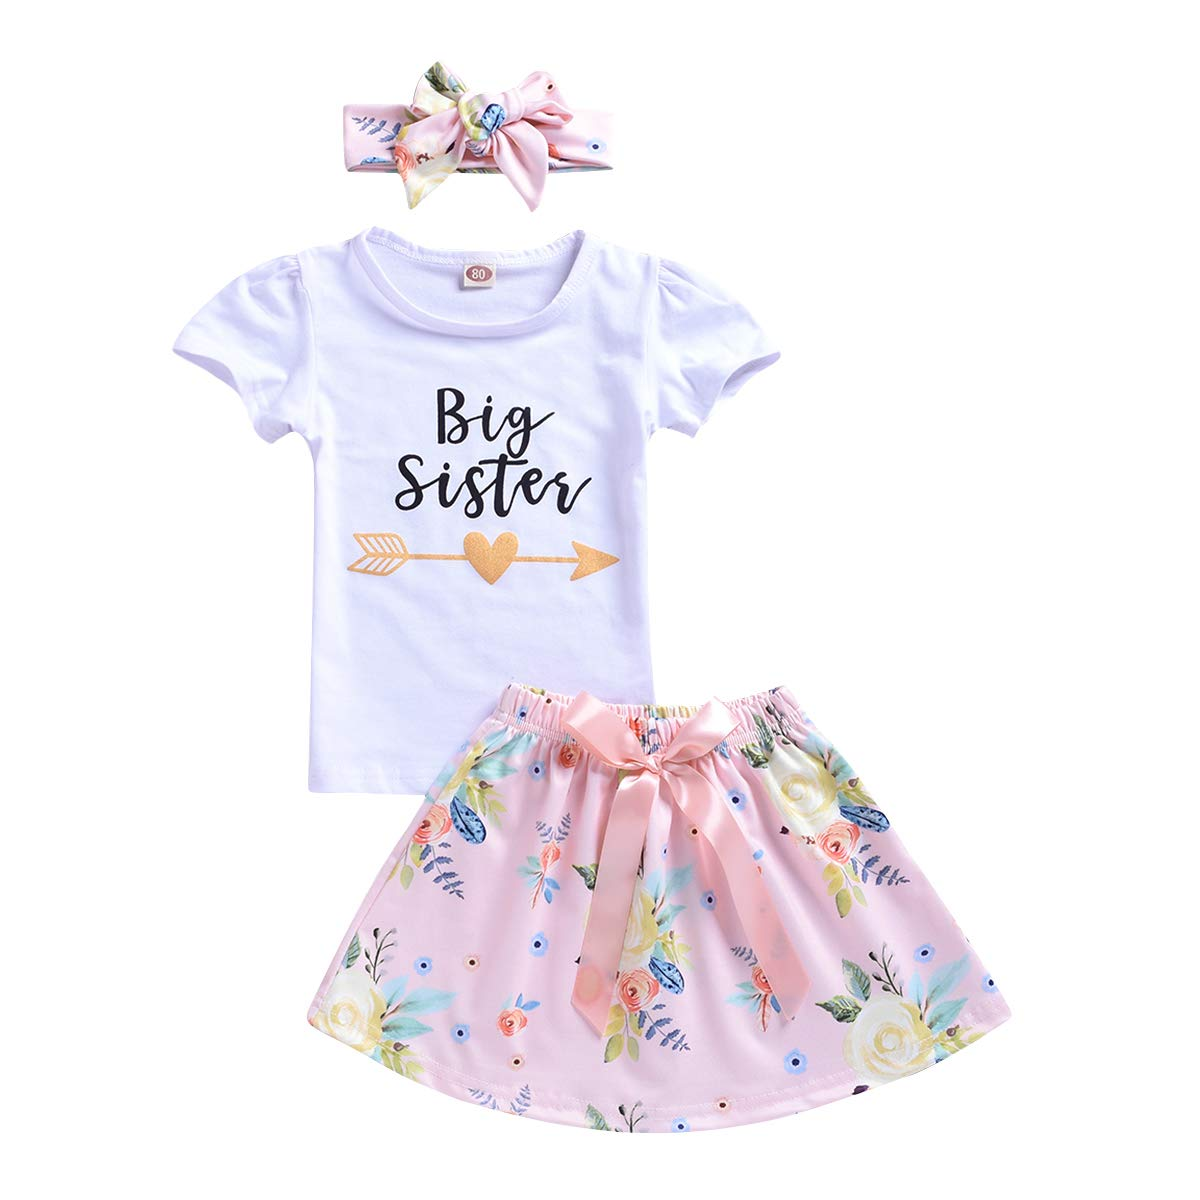 Baby Little Big Sister Matching Outfit Floral T-Shirt Skirt Romper Shorts Set with Headband